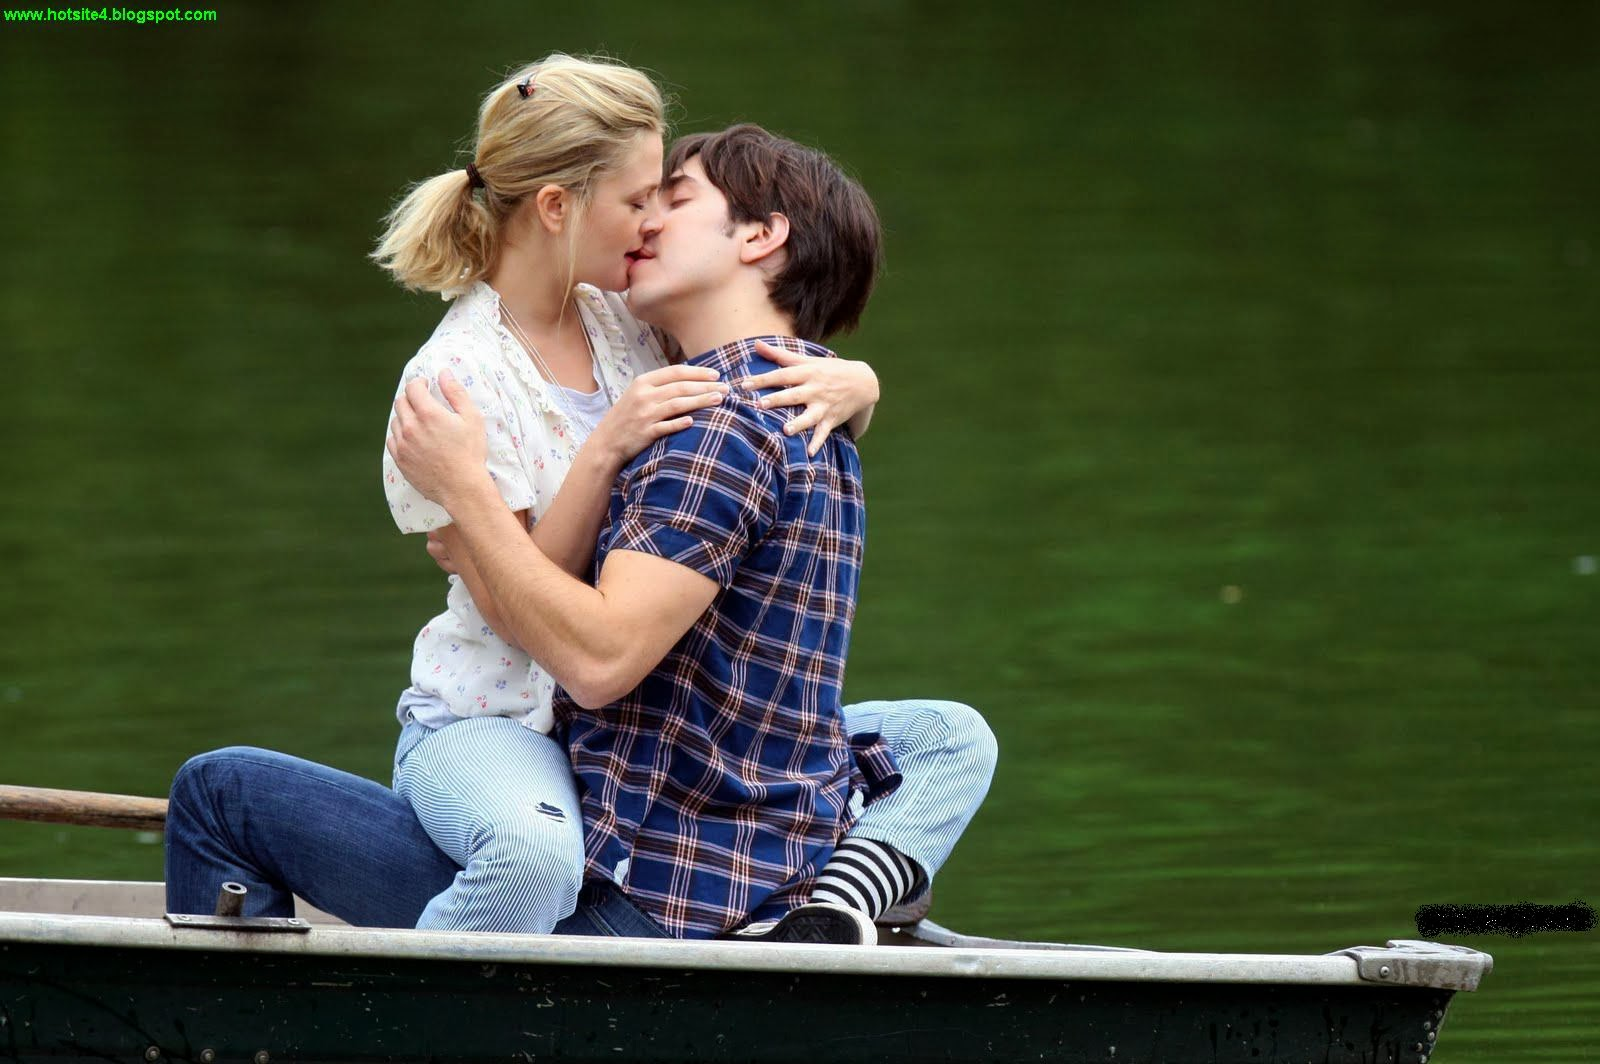 Hot Kissing Couple Hd 2014 Wallpapers - Hot Kiss Full Size -8111